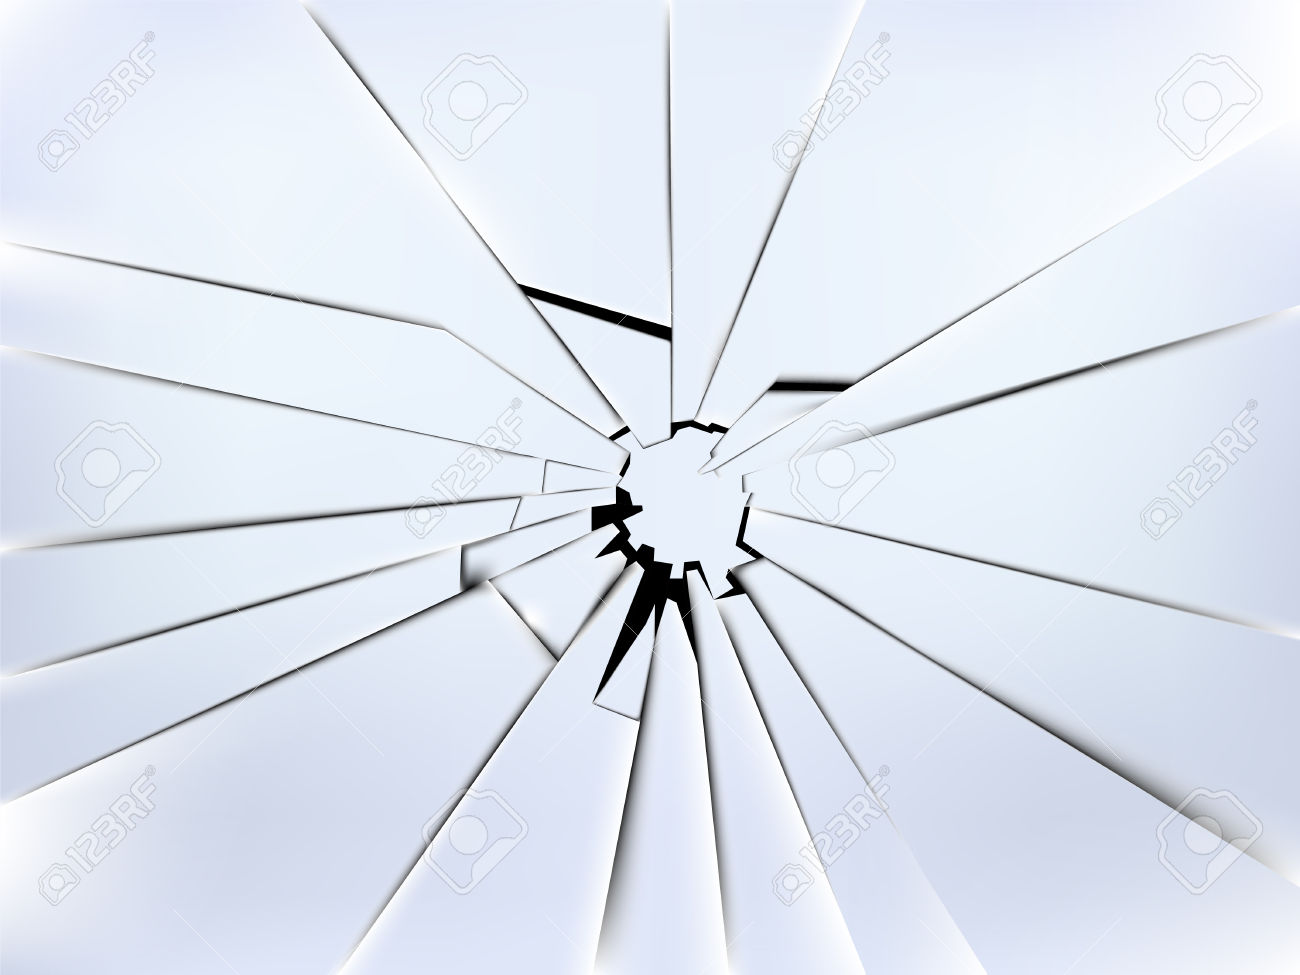 Broken Window Clipart.